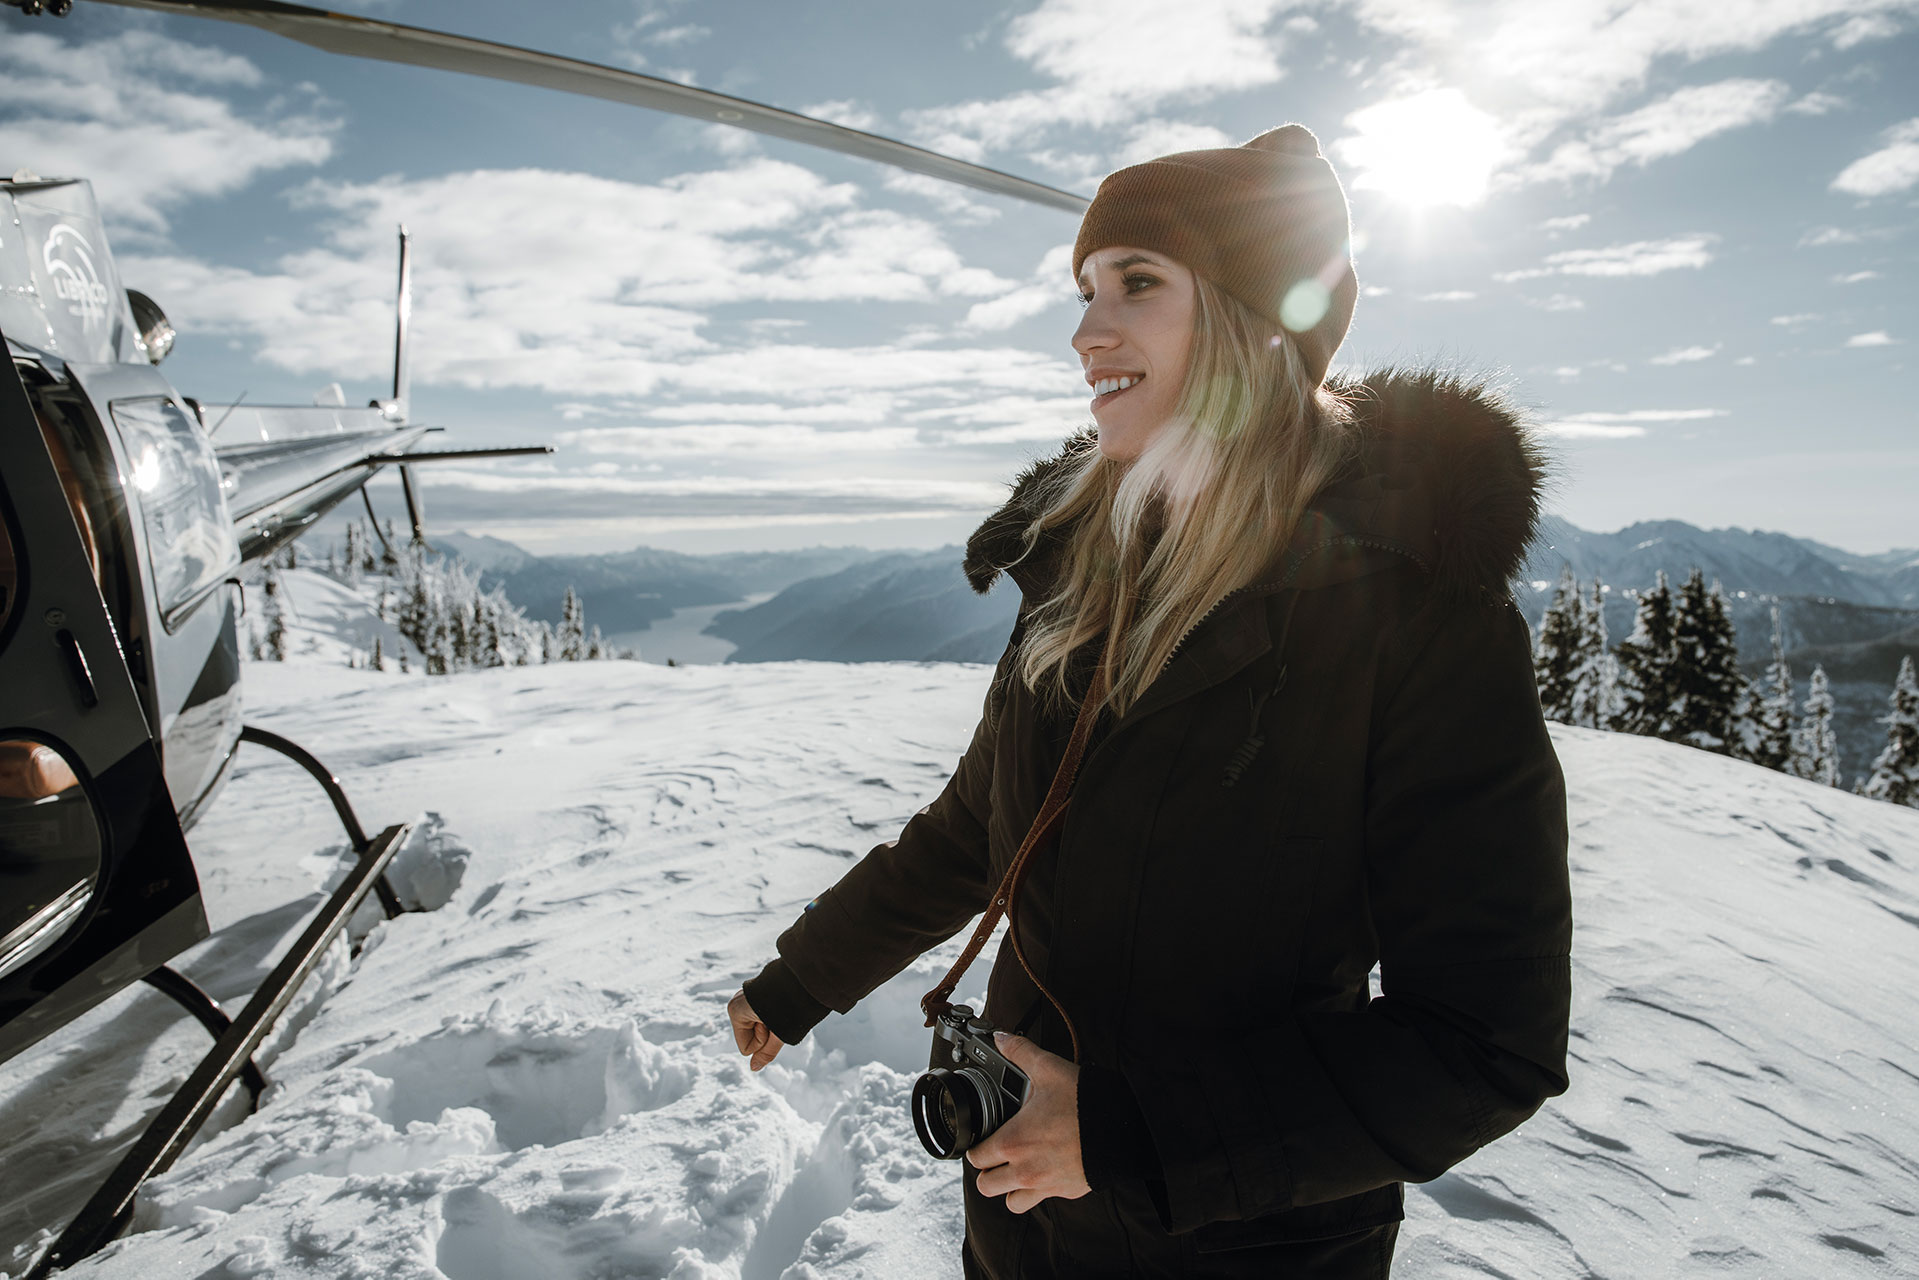 Librico Helicopters team member on a mountain peak with the Falcon Helicopter beside her